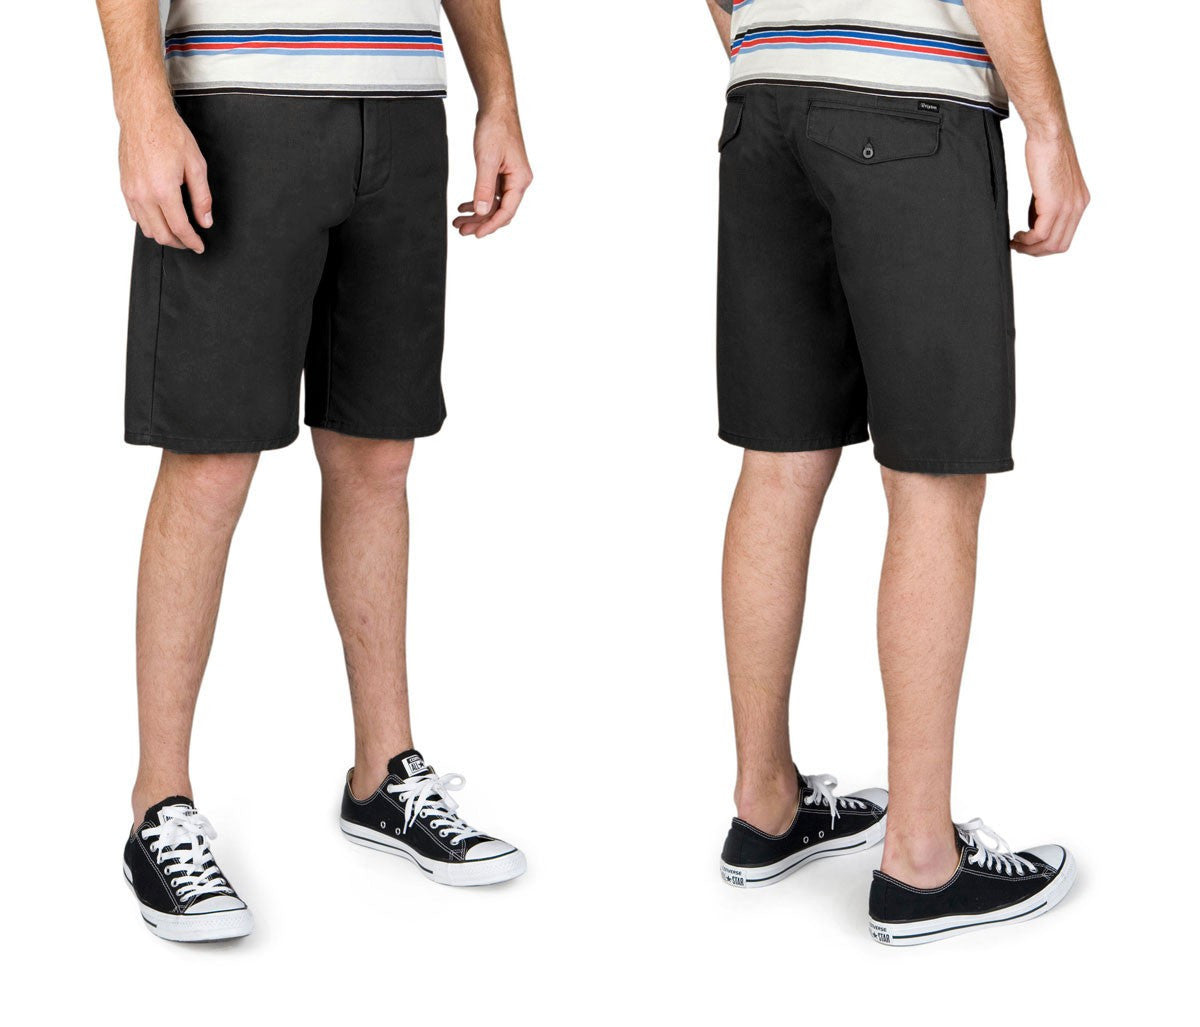 Brixton - Carter Relaxed Fit Men's Chino Shorts, Black - The Giant Peach